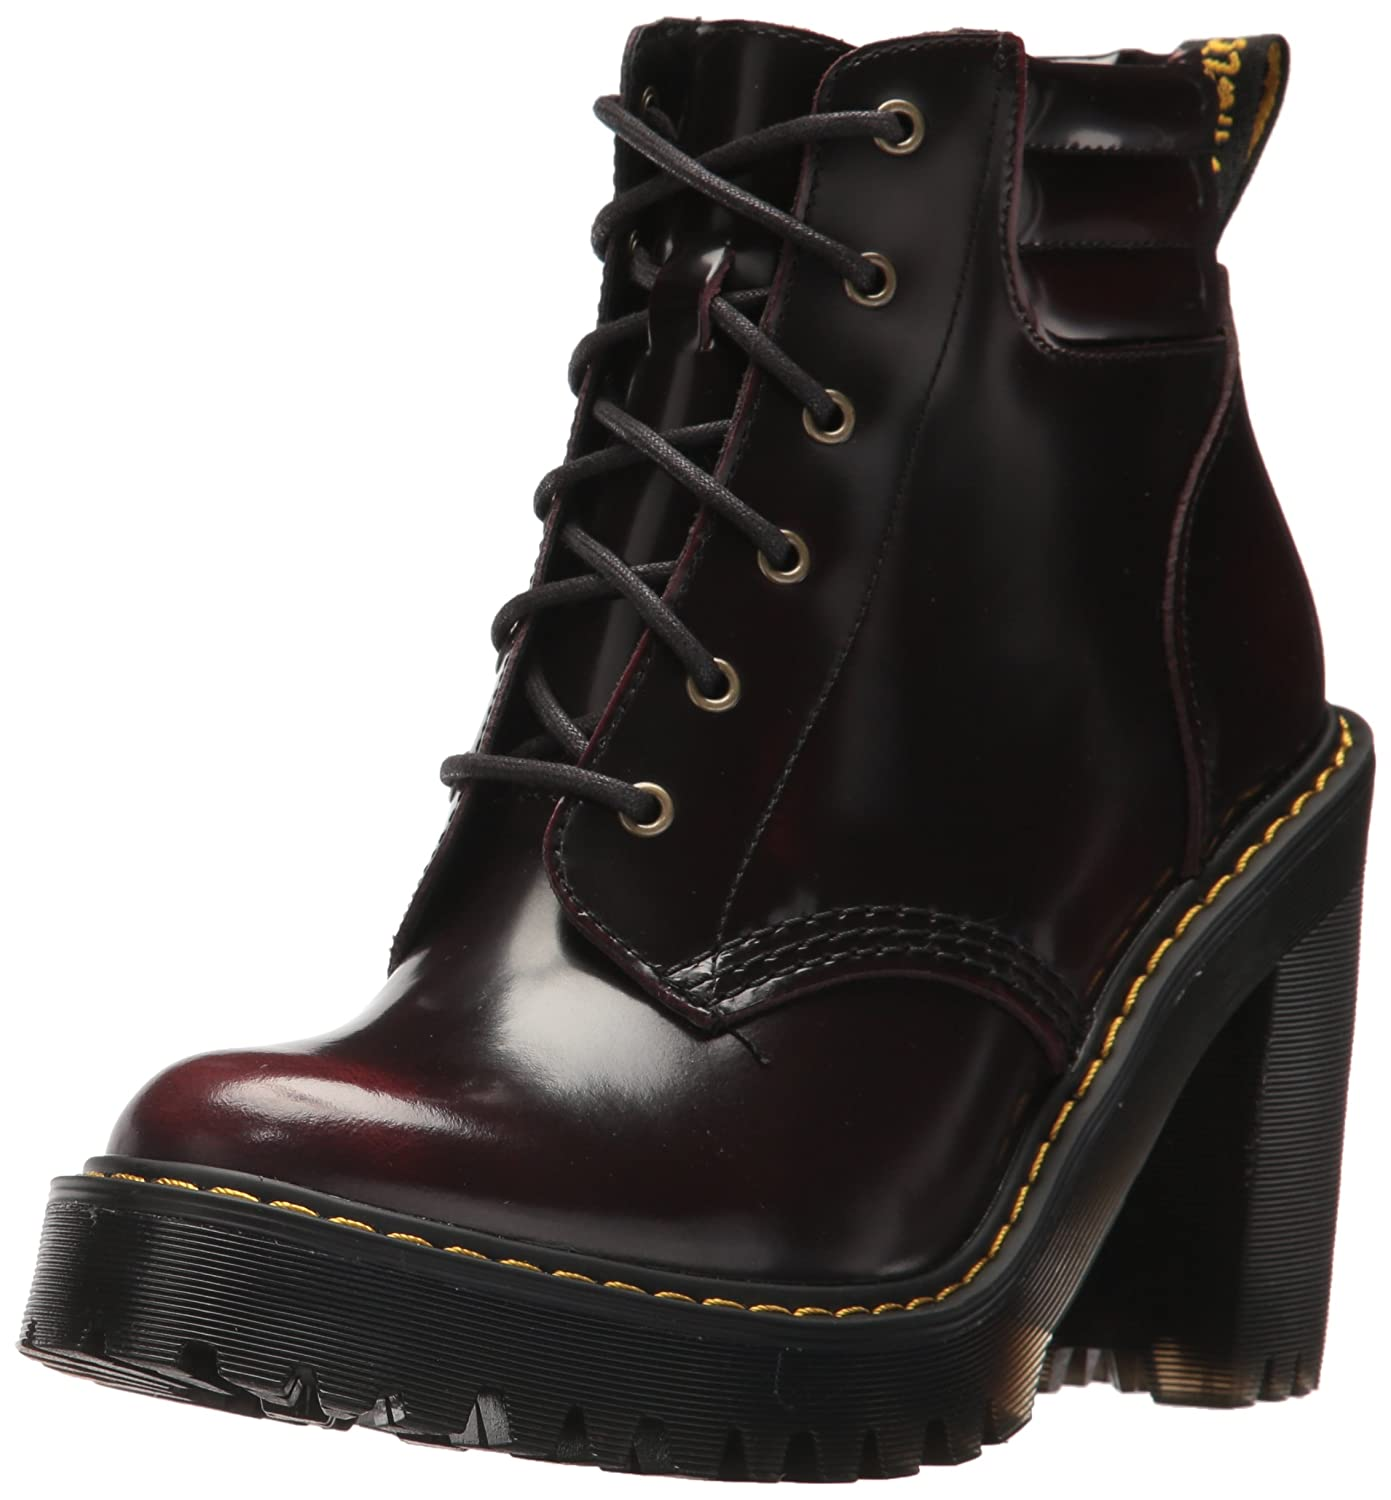 Dr. Martens Women's Persephone Fashion Boot B0716HJ81X 5 Medium UK (7 US)|Cherry Red